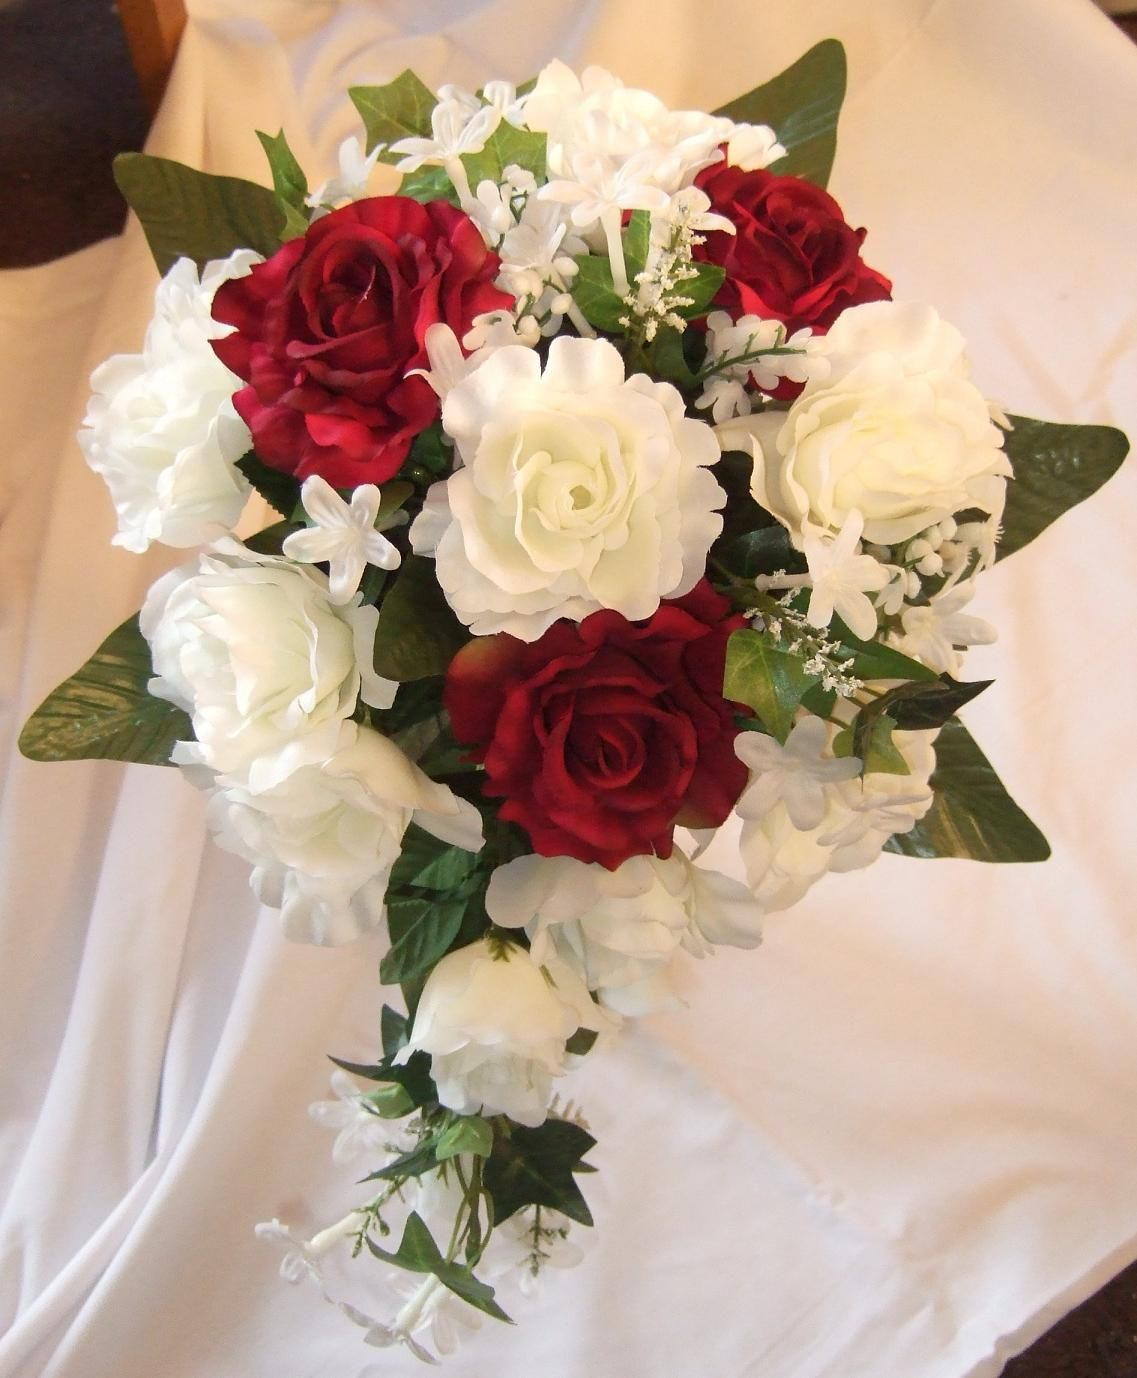 wedding flower bouquets flower ideas burgundy and white roses burgundy silk wedding flower